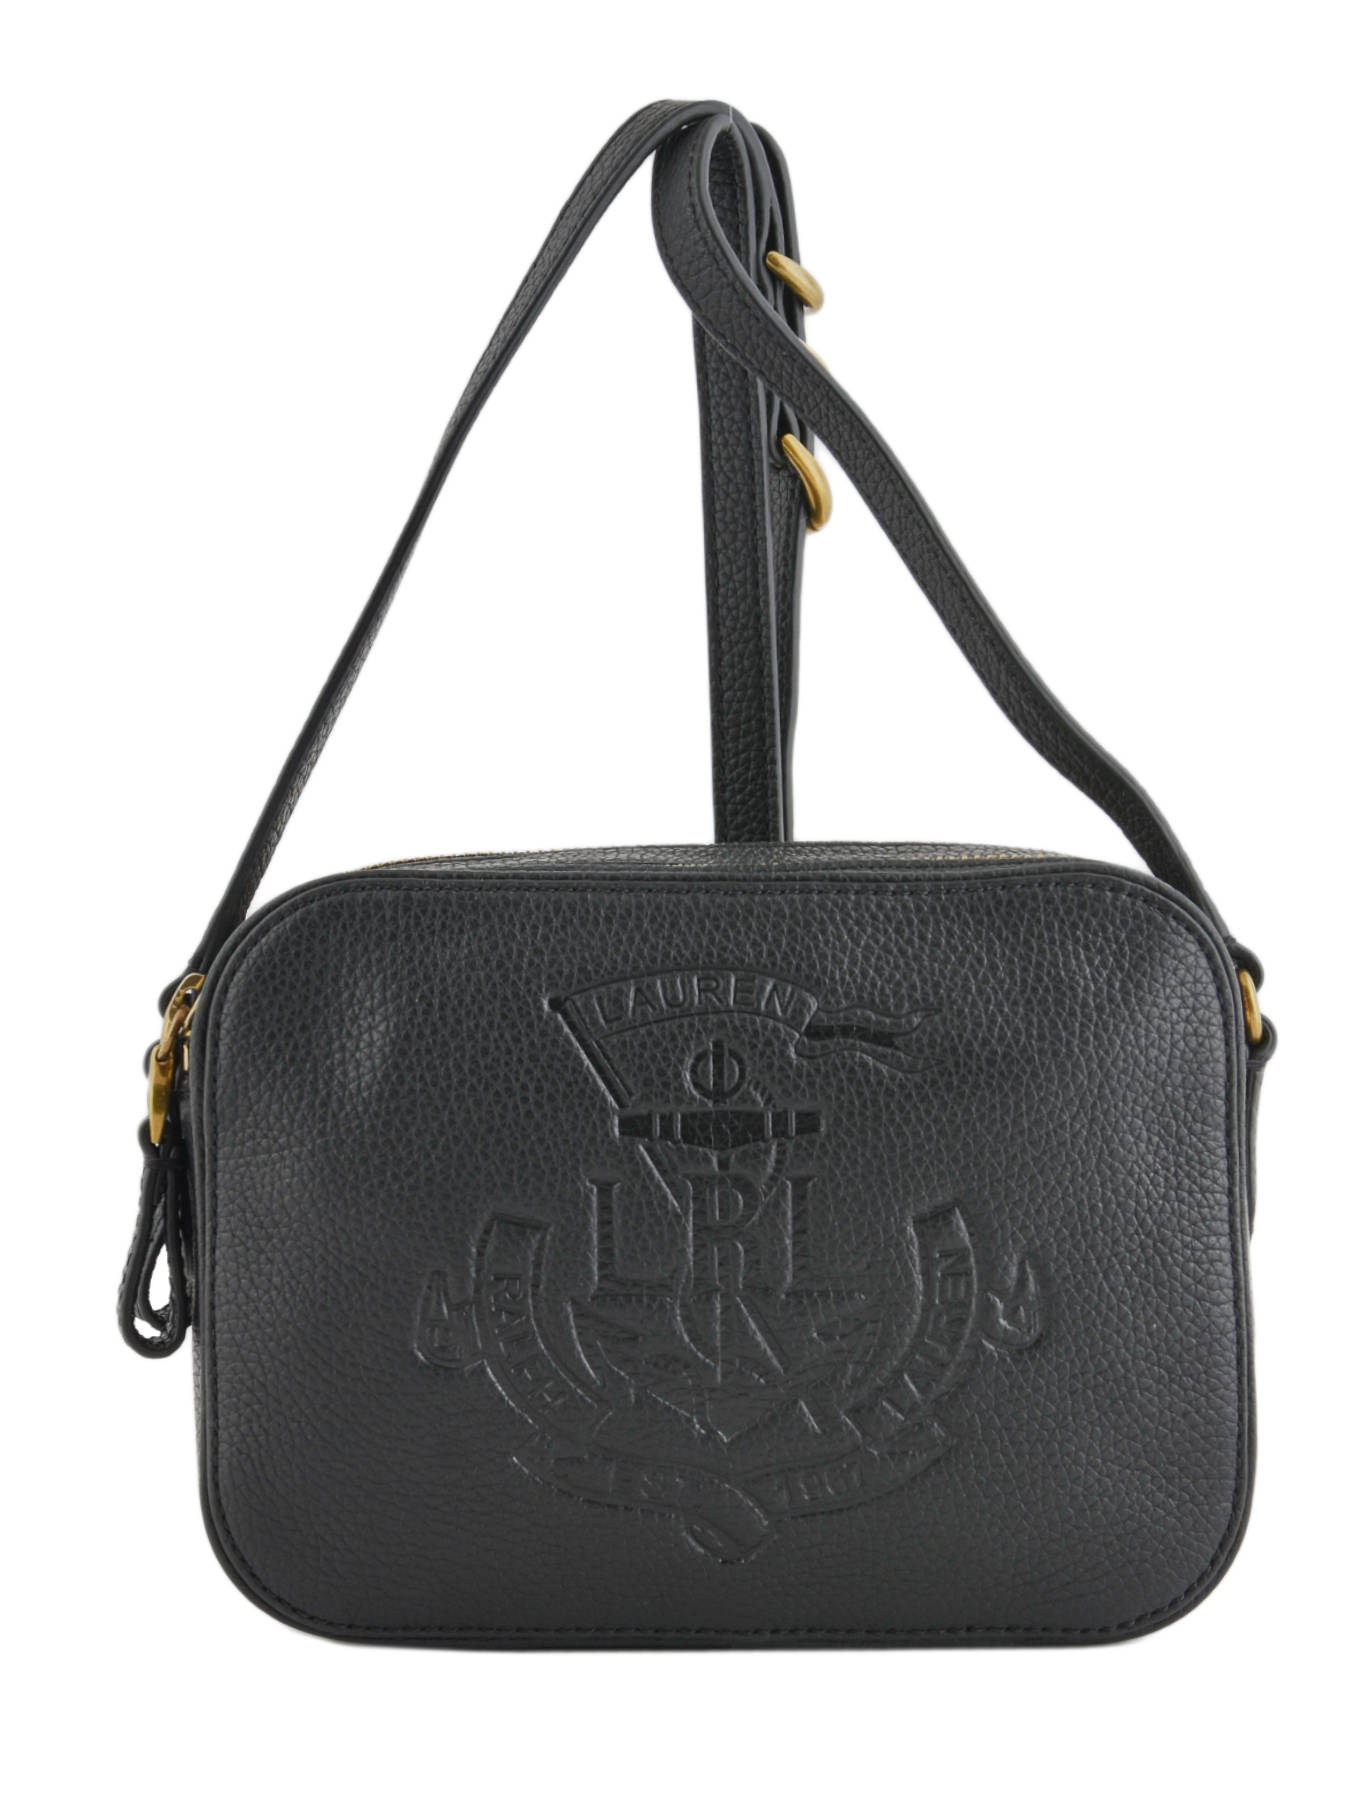 e994ed6511 ... Shoulder Bag Huntley Leather Lauren ralph lauren Black huntley 31704451  ...